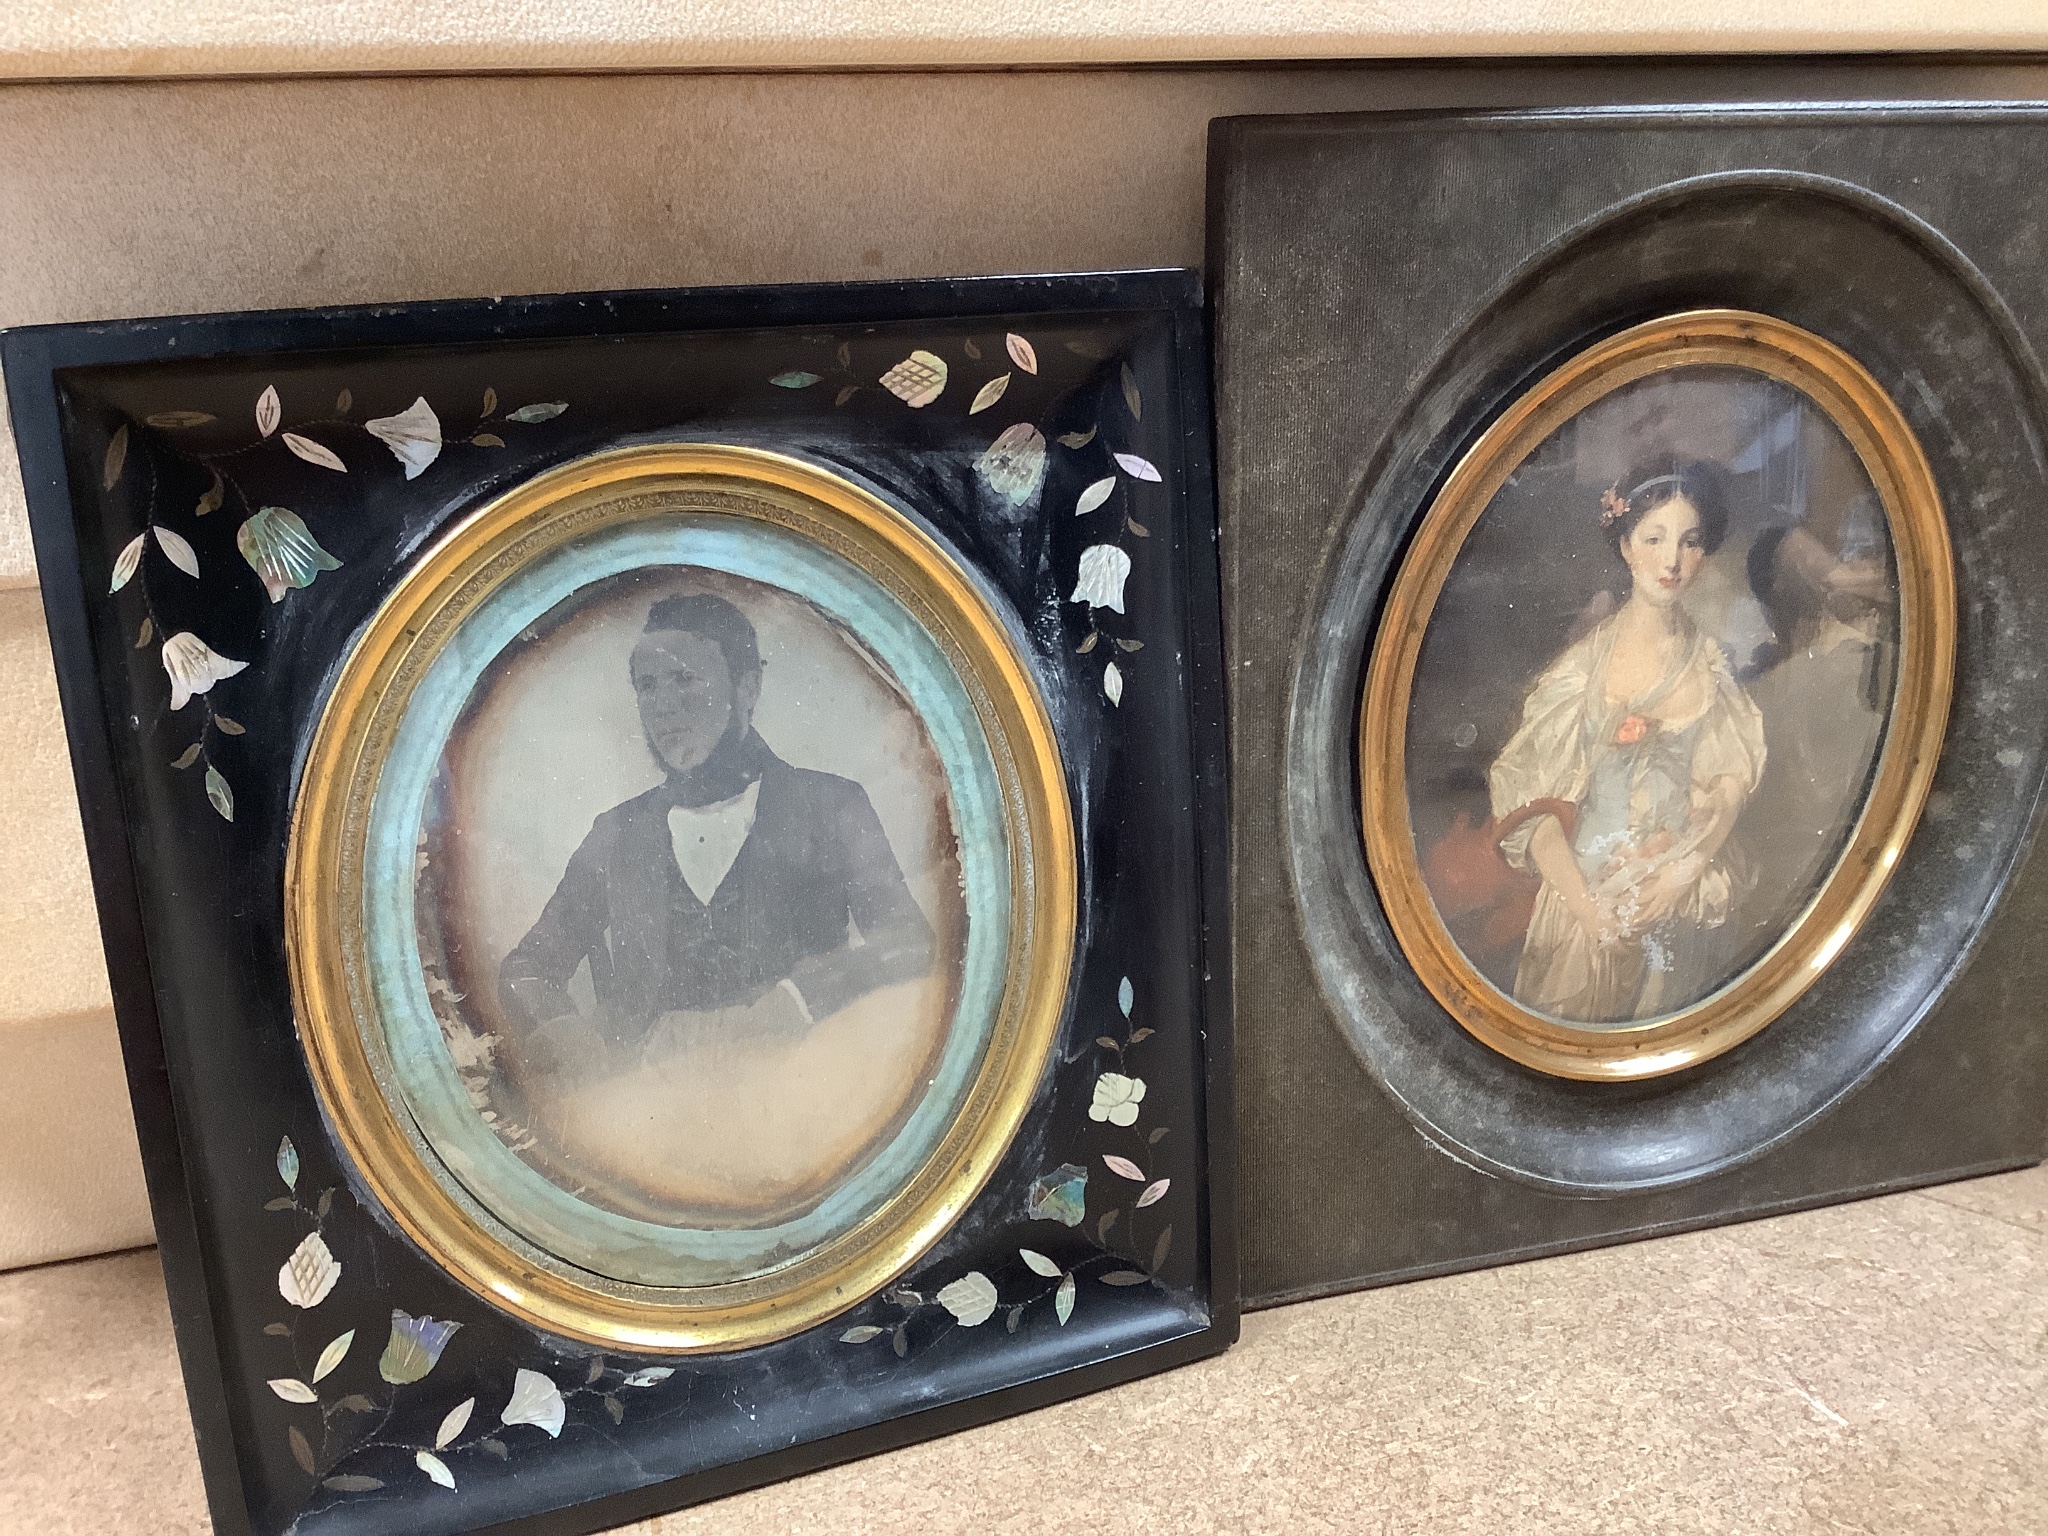 A 19th century Daguerreotype portrait of a gentleman, together with a small Russian painted icon, a - Image 2 of 4